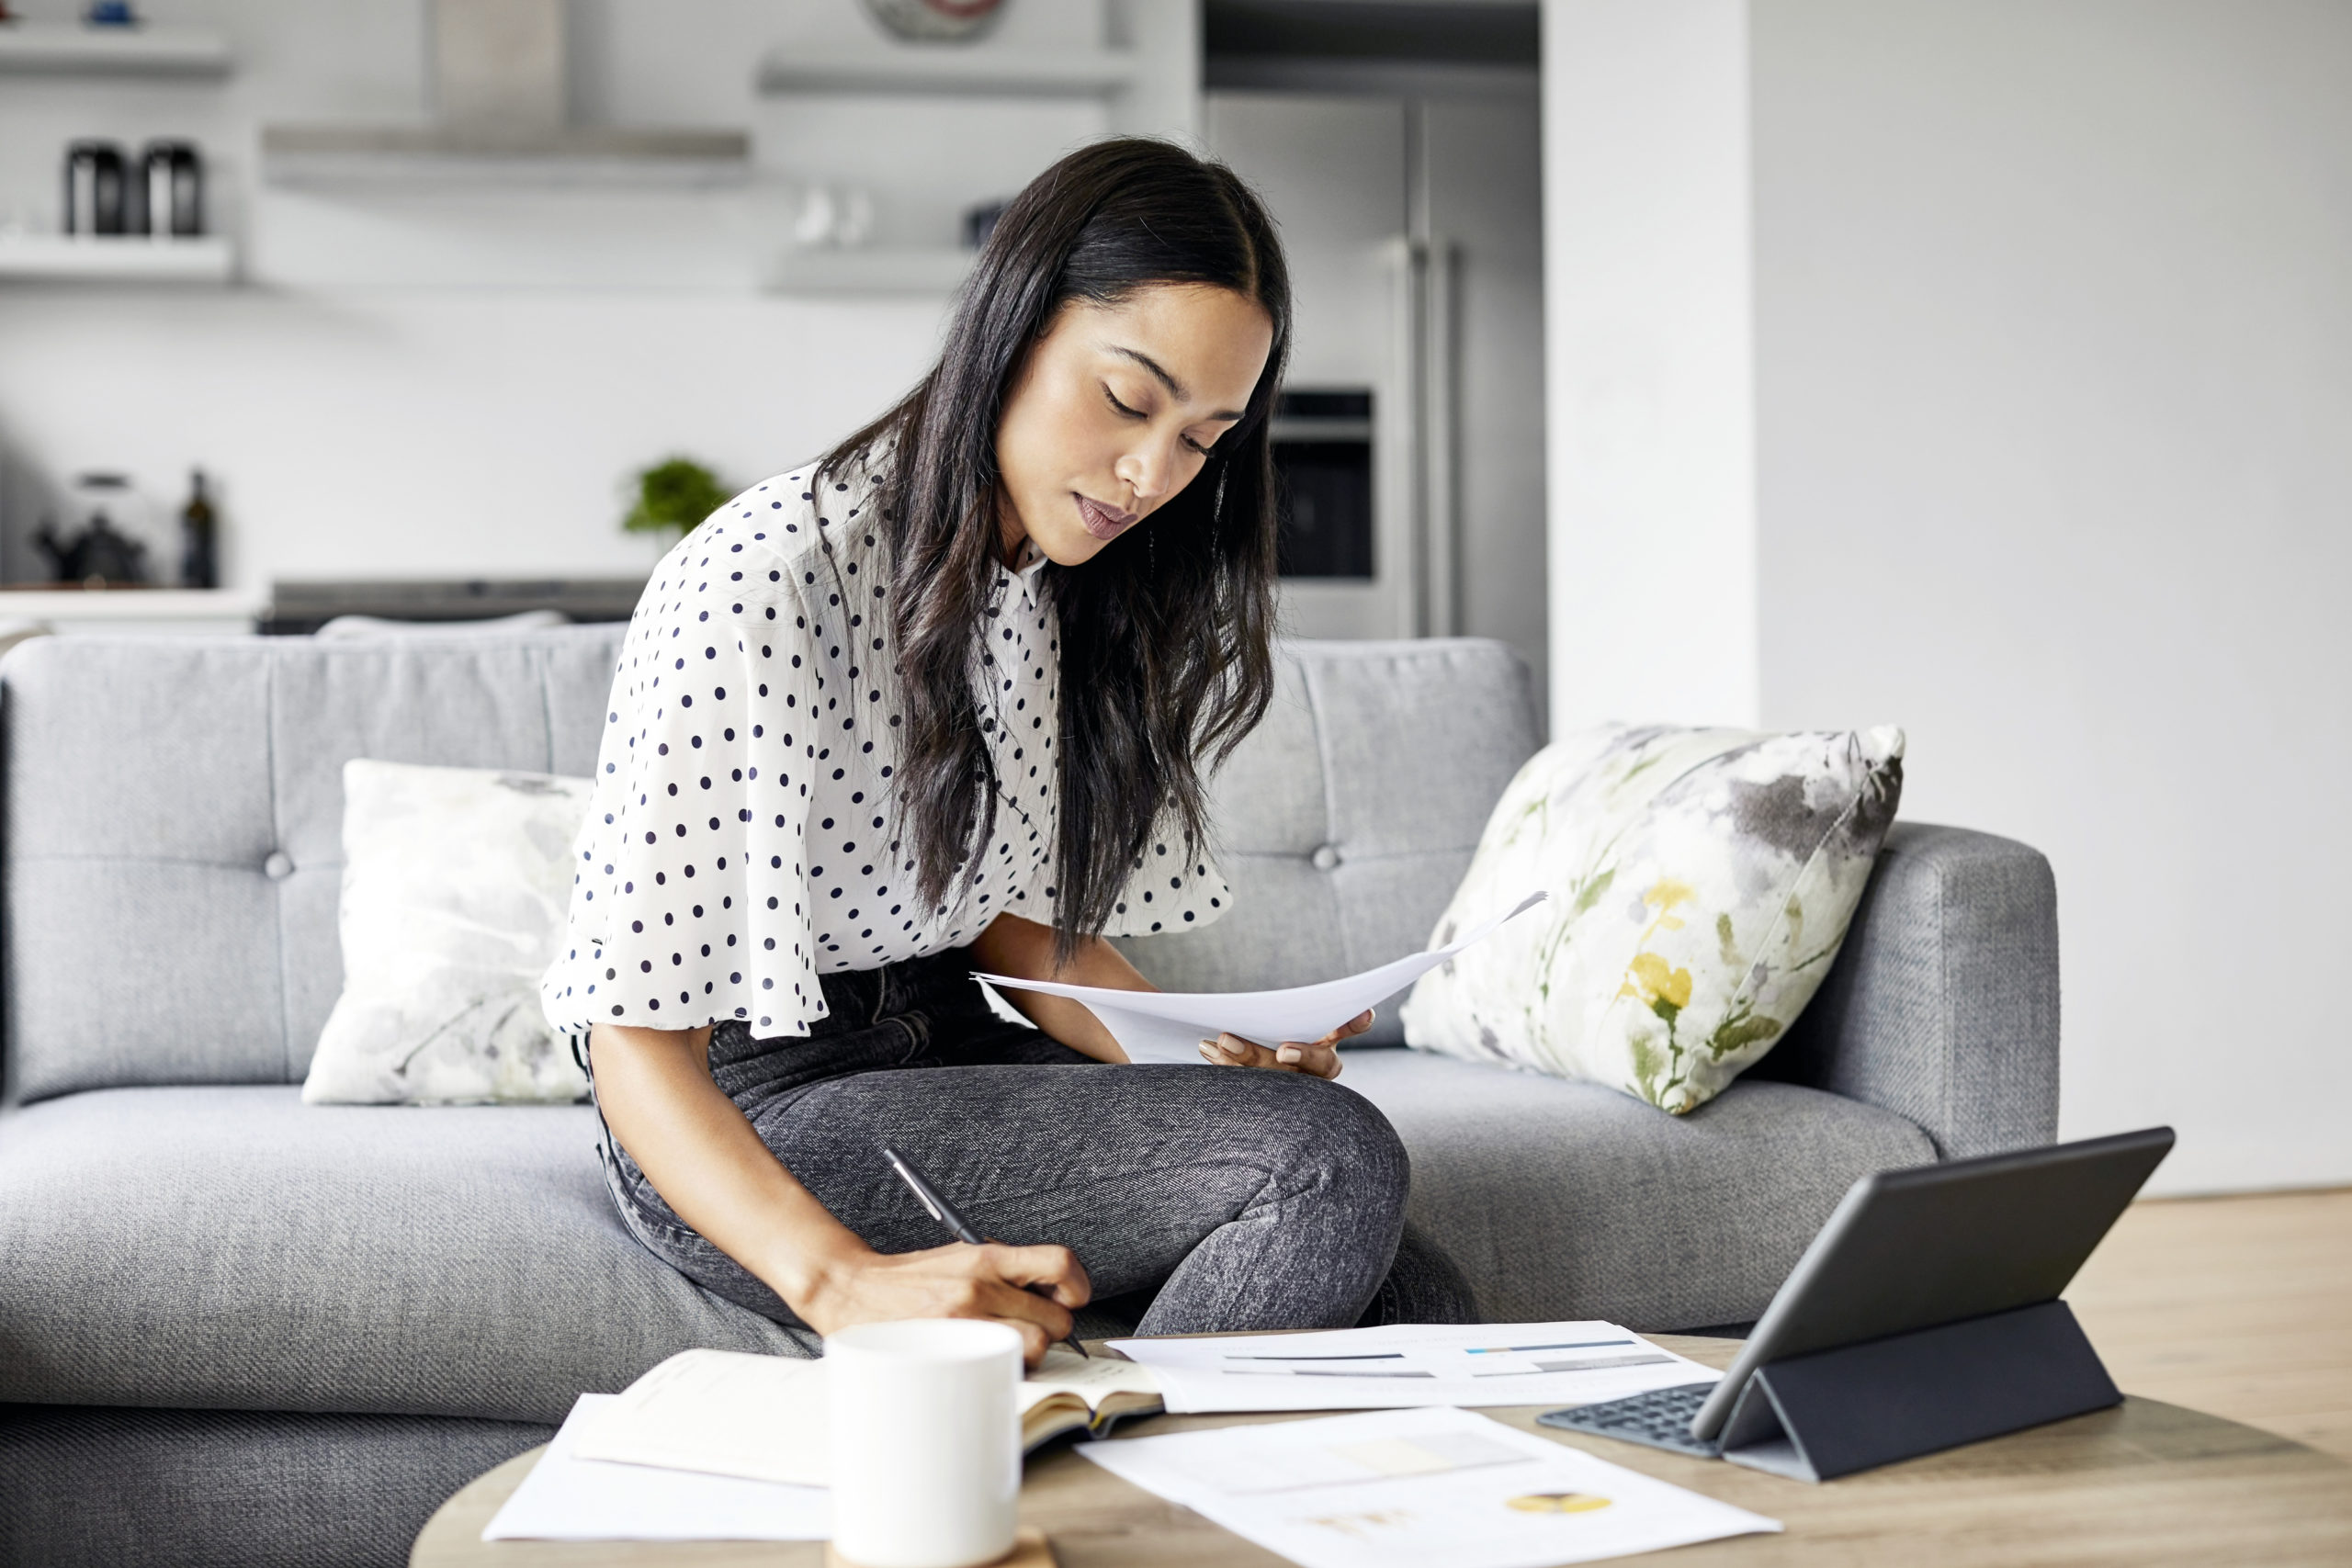 Woman practicing self-care by planning